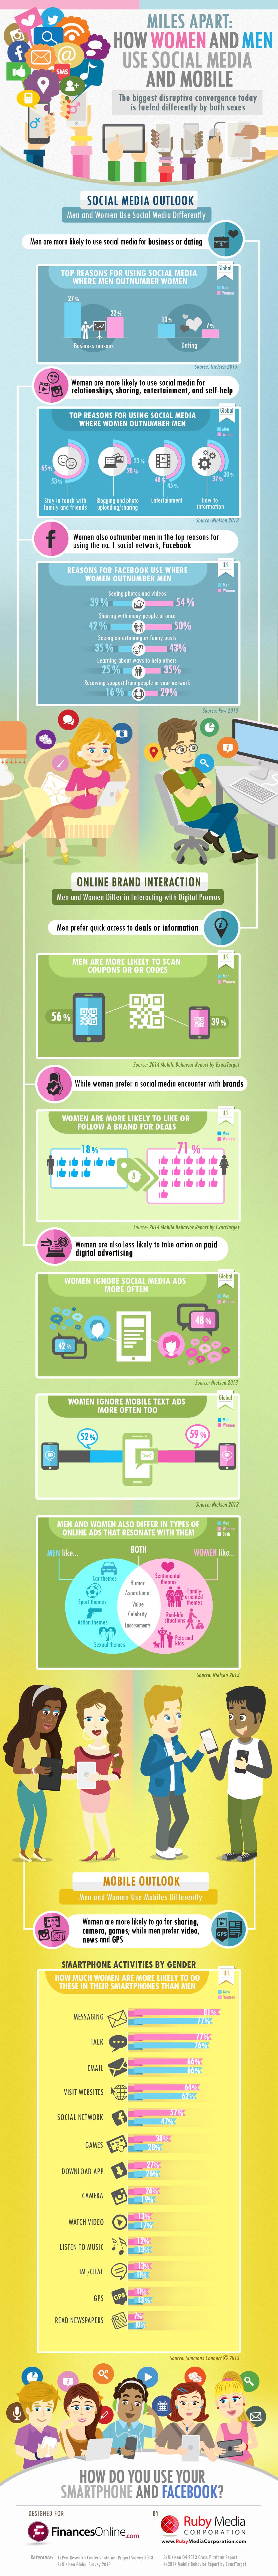 INFOGRAPHIC: How Women and Men Use Social Media & Mobile